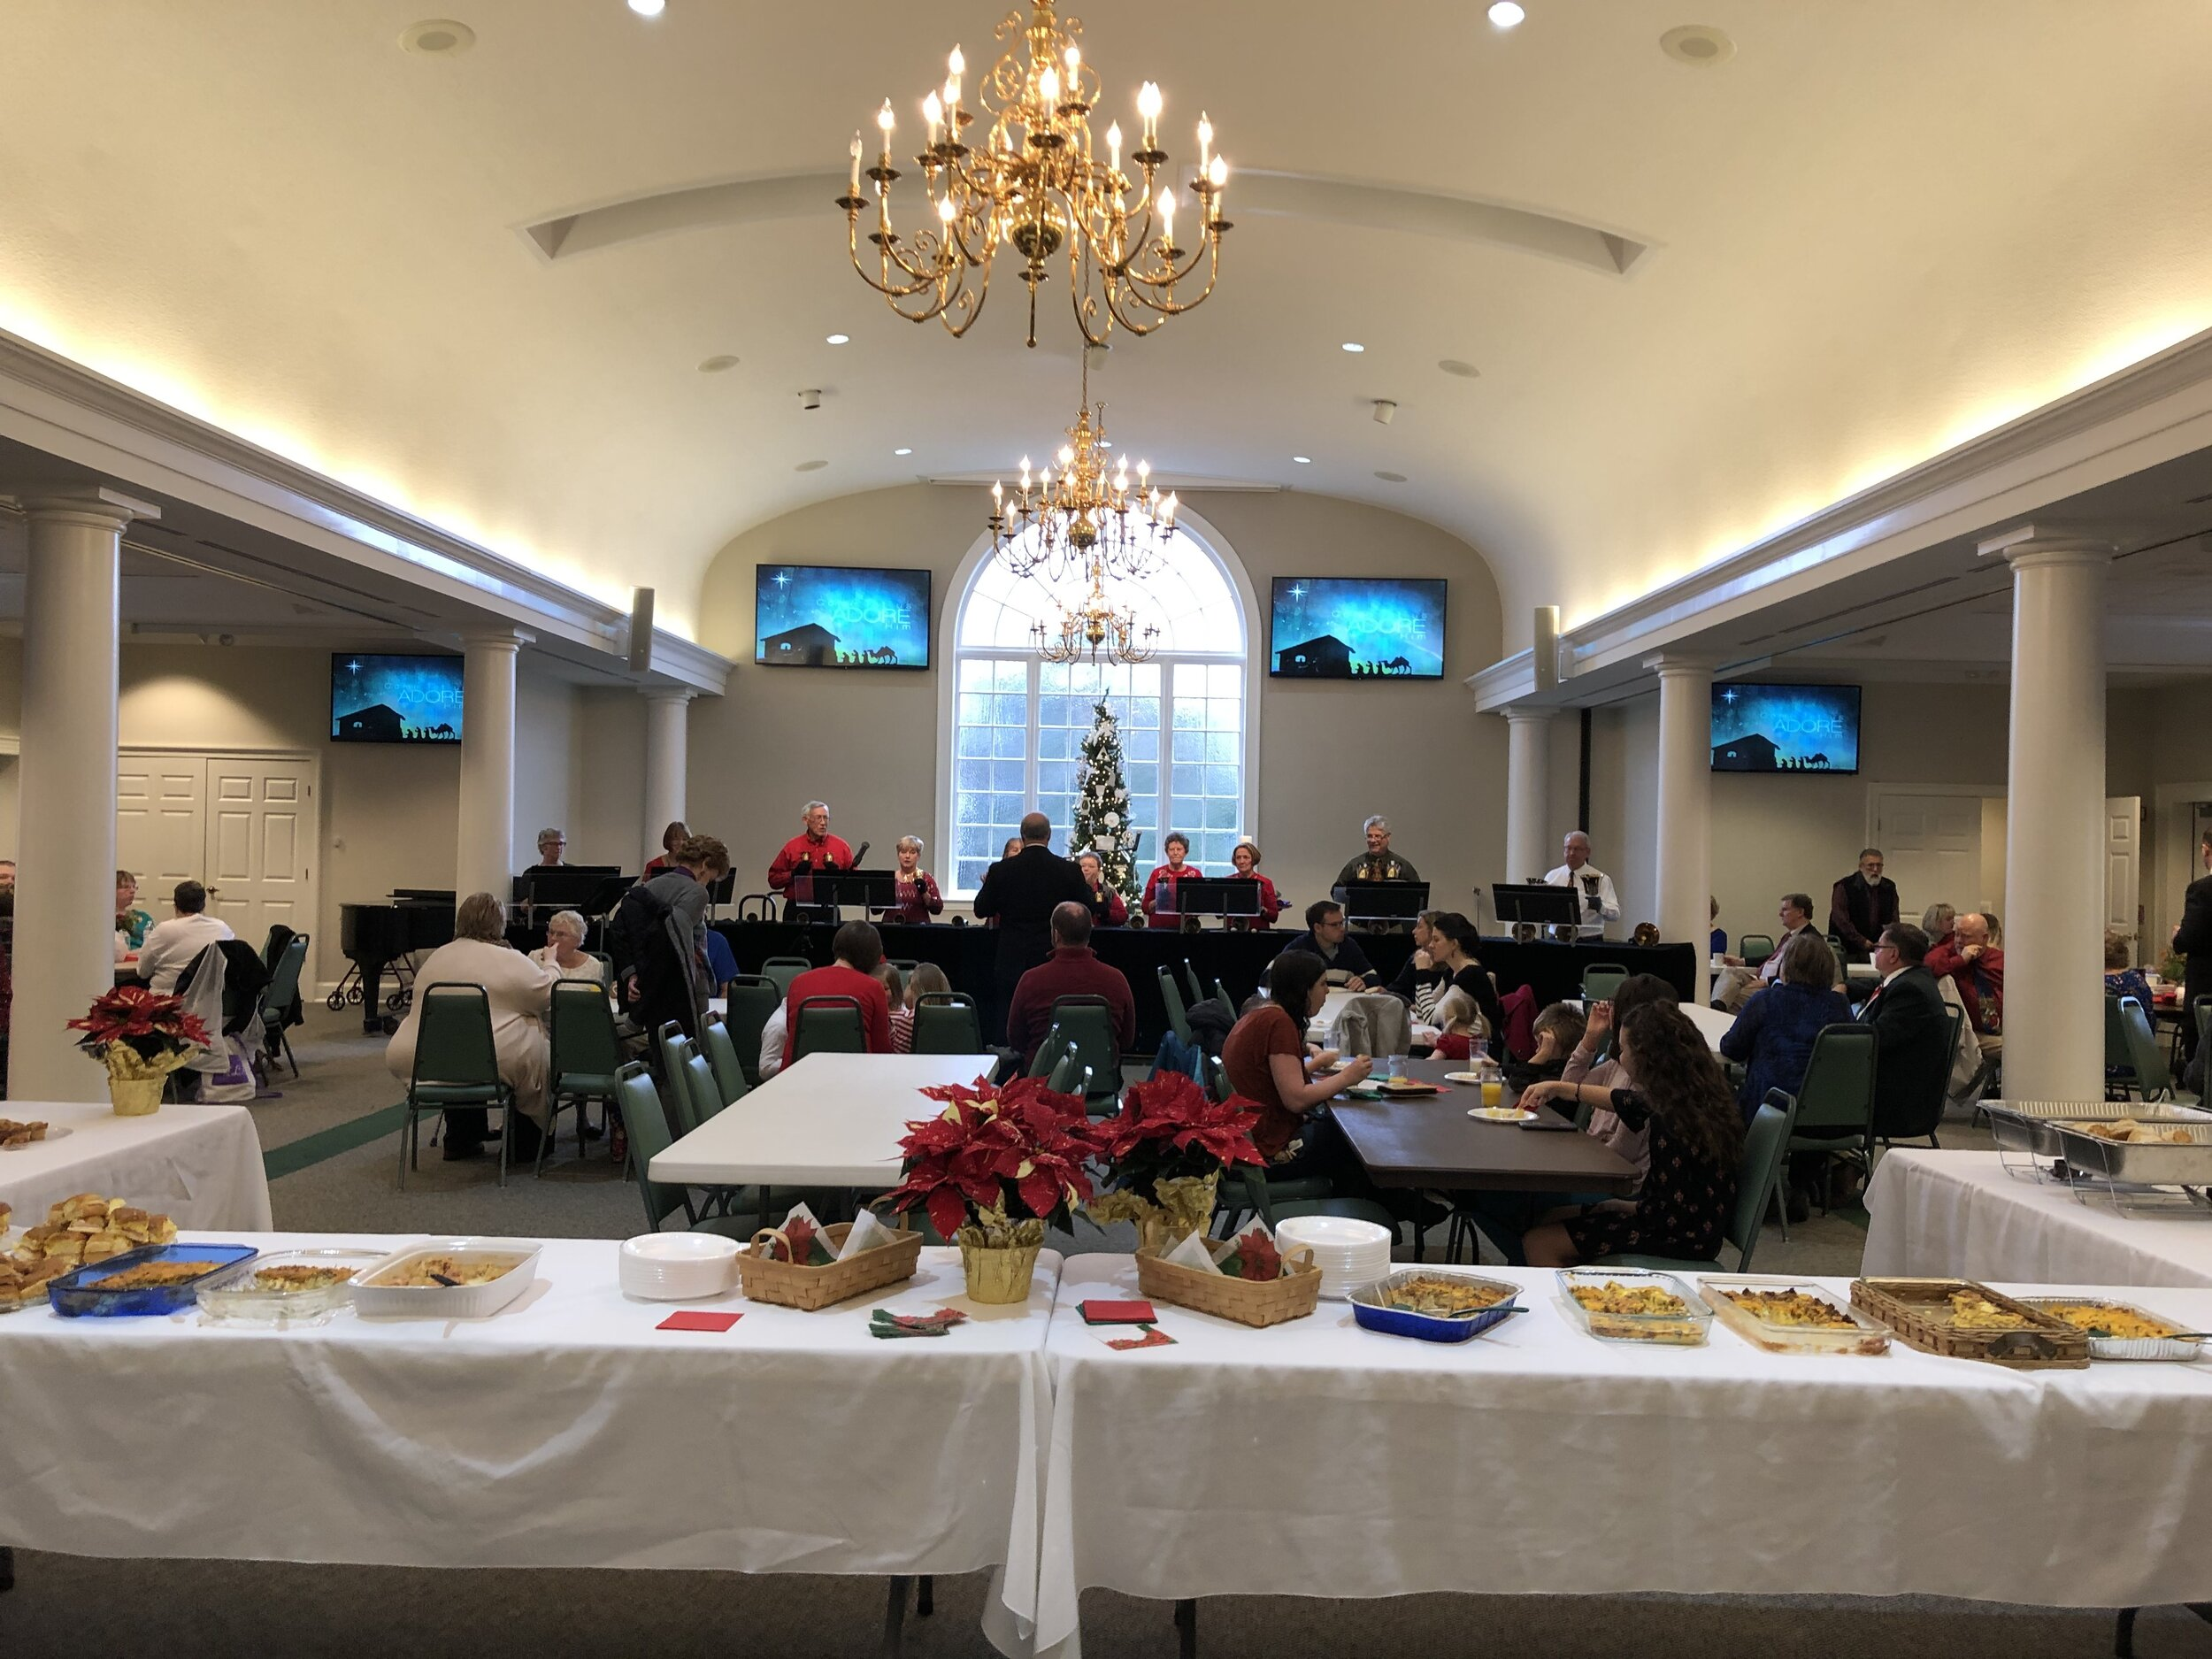 Church-wide Breakfast - December 22 | 8:30 AM - 10 AM | Fellowship Hall